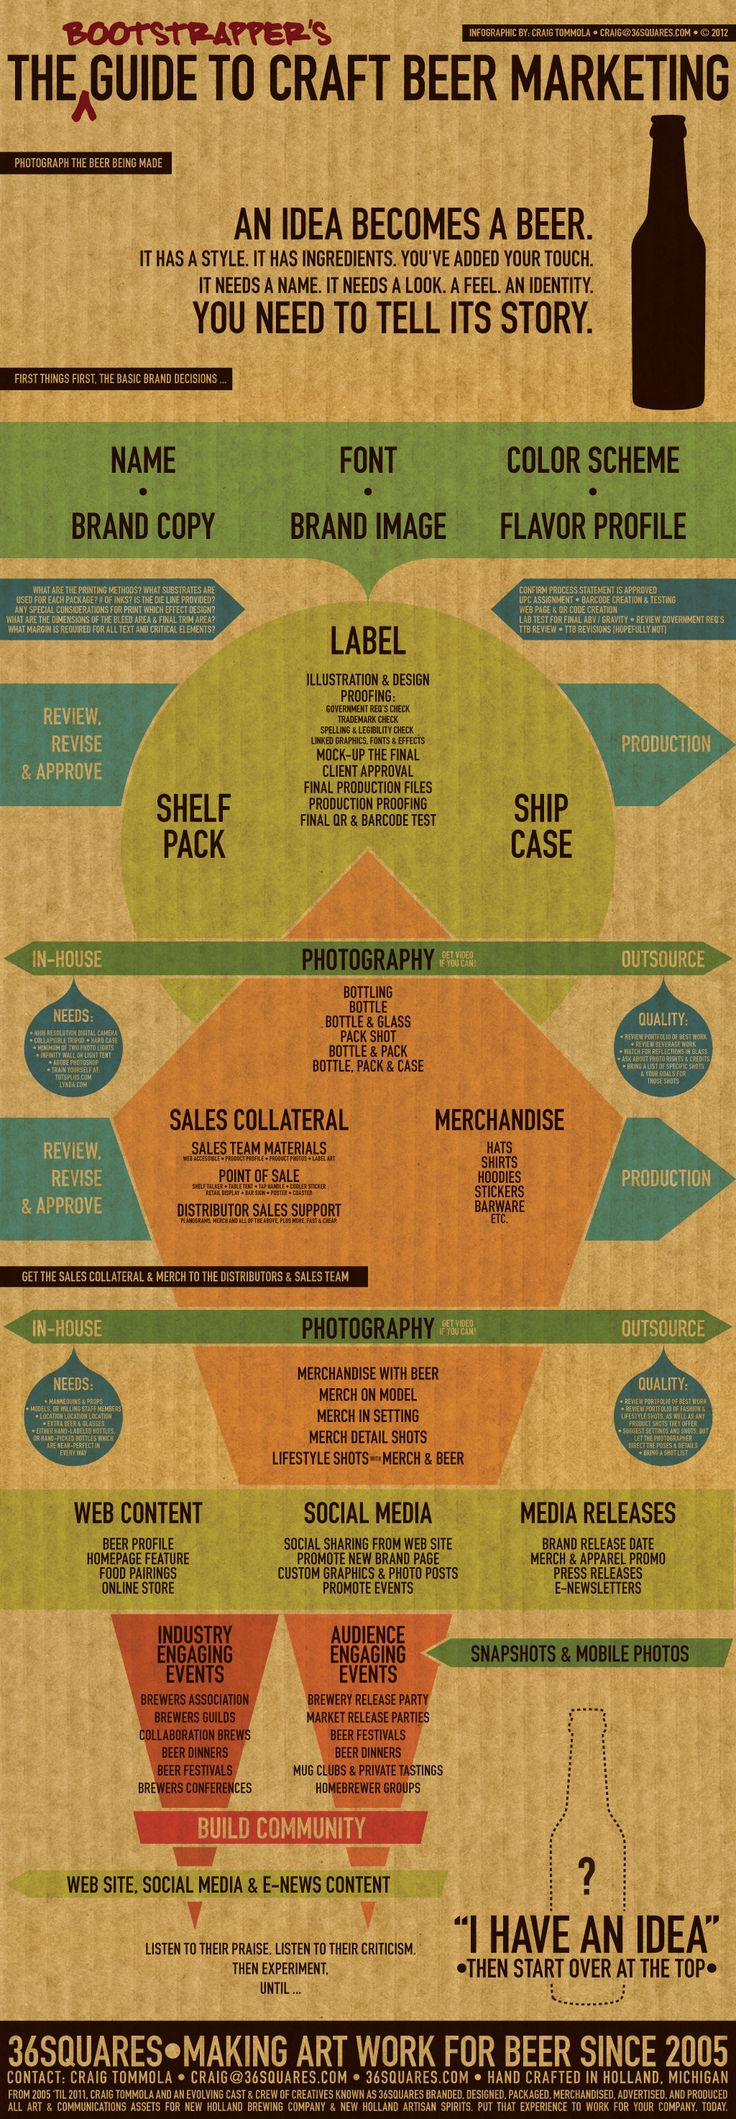 A guide to craft beer marketing infographic brookston for Guide to craft beer